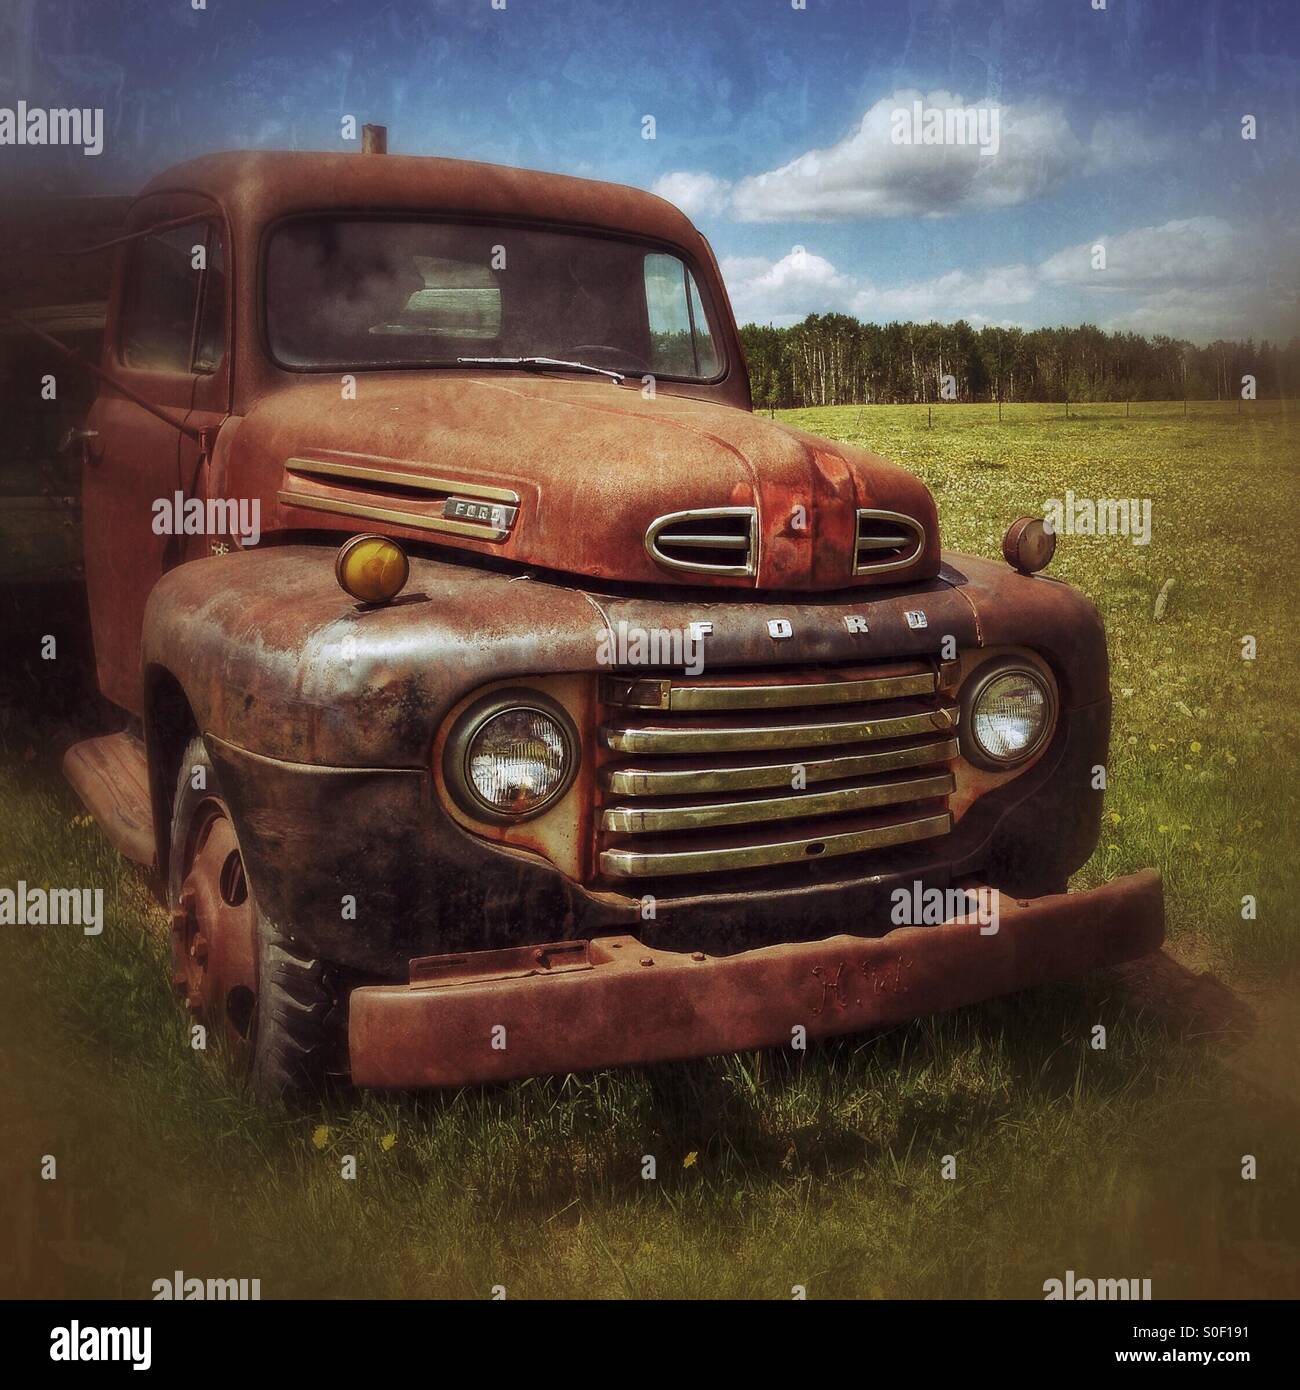 Ford Trucks Stock Photos & Ford Trucks Stock Images - Alamy